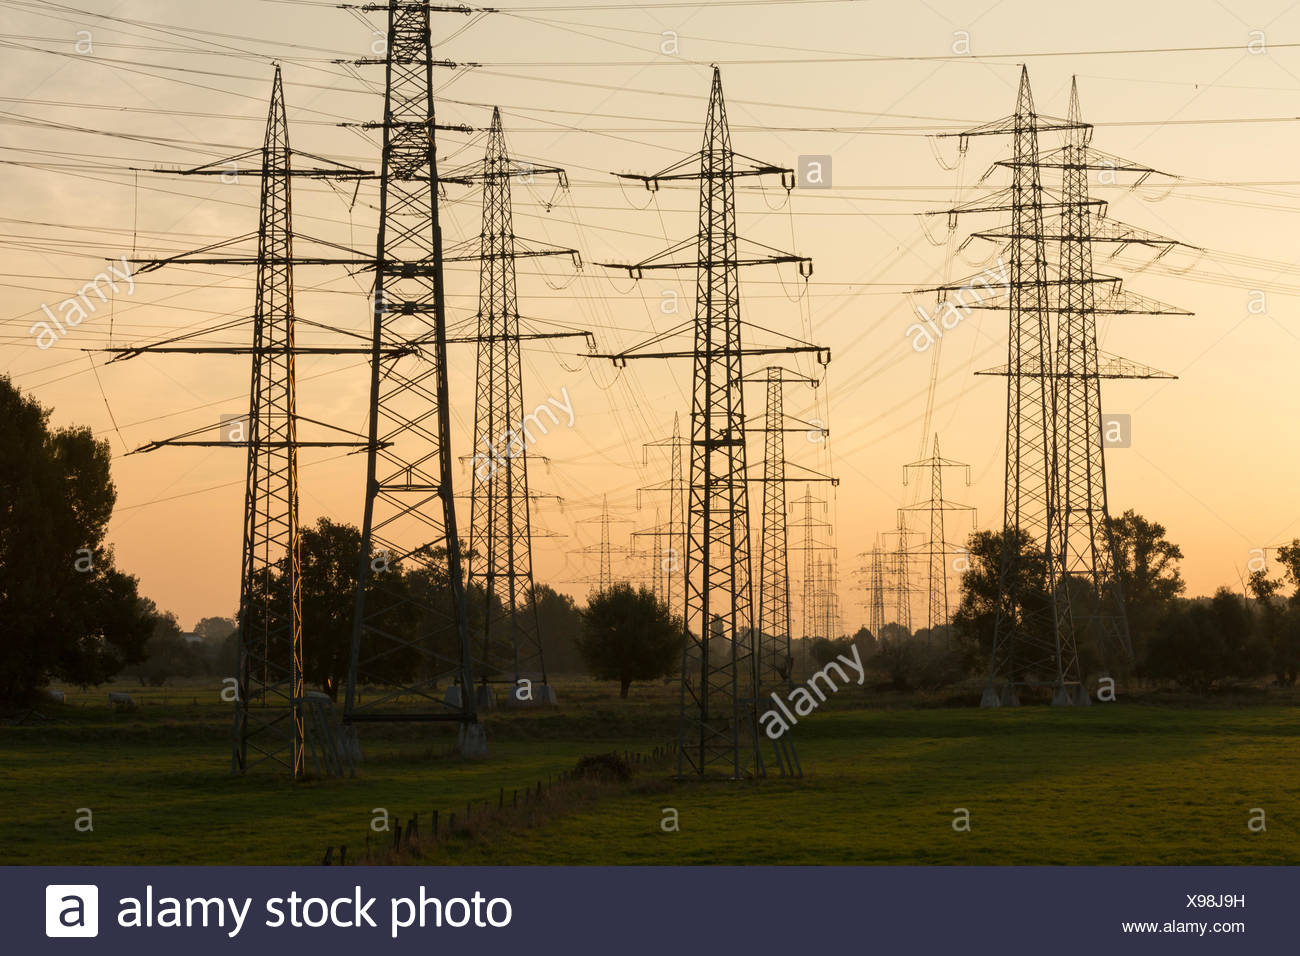 Overhead cables in a landscape - Stock Image